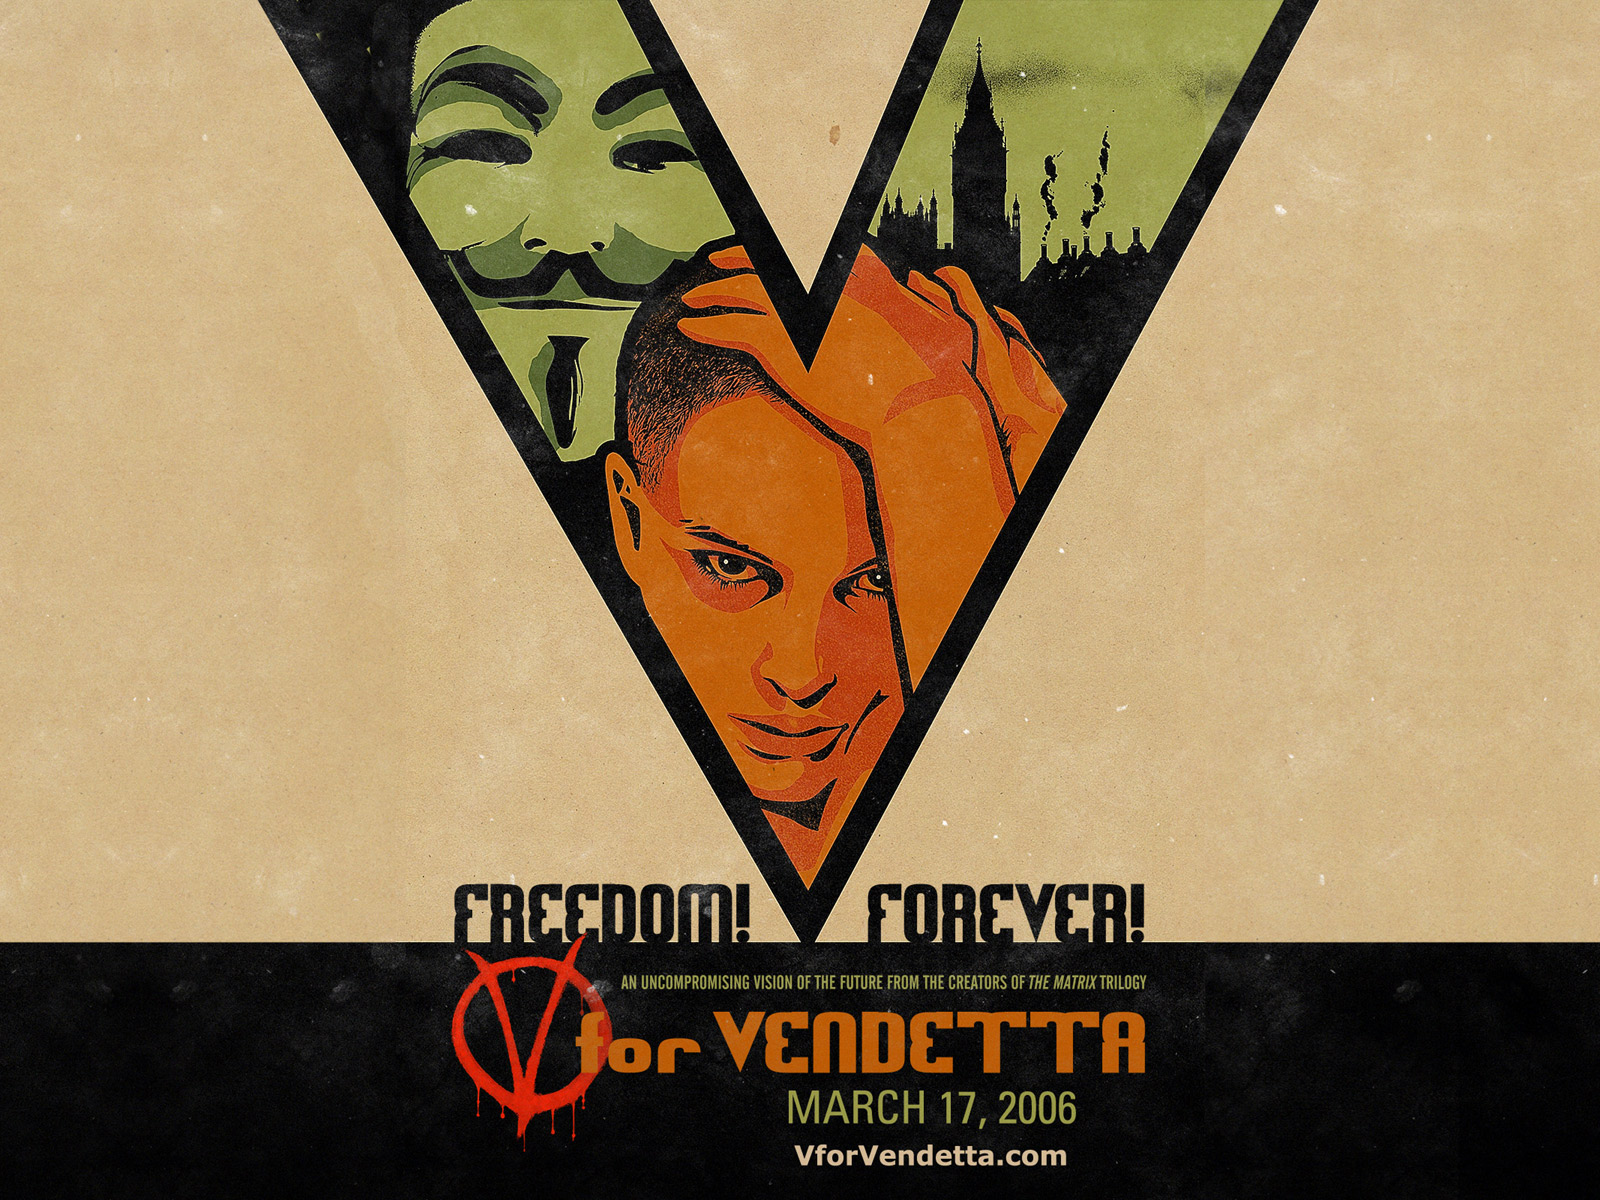 Wallpaper V pour Vendetta - V for Vendetta grand V